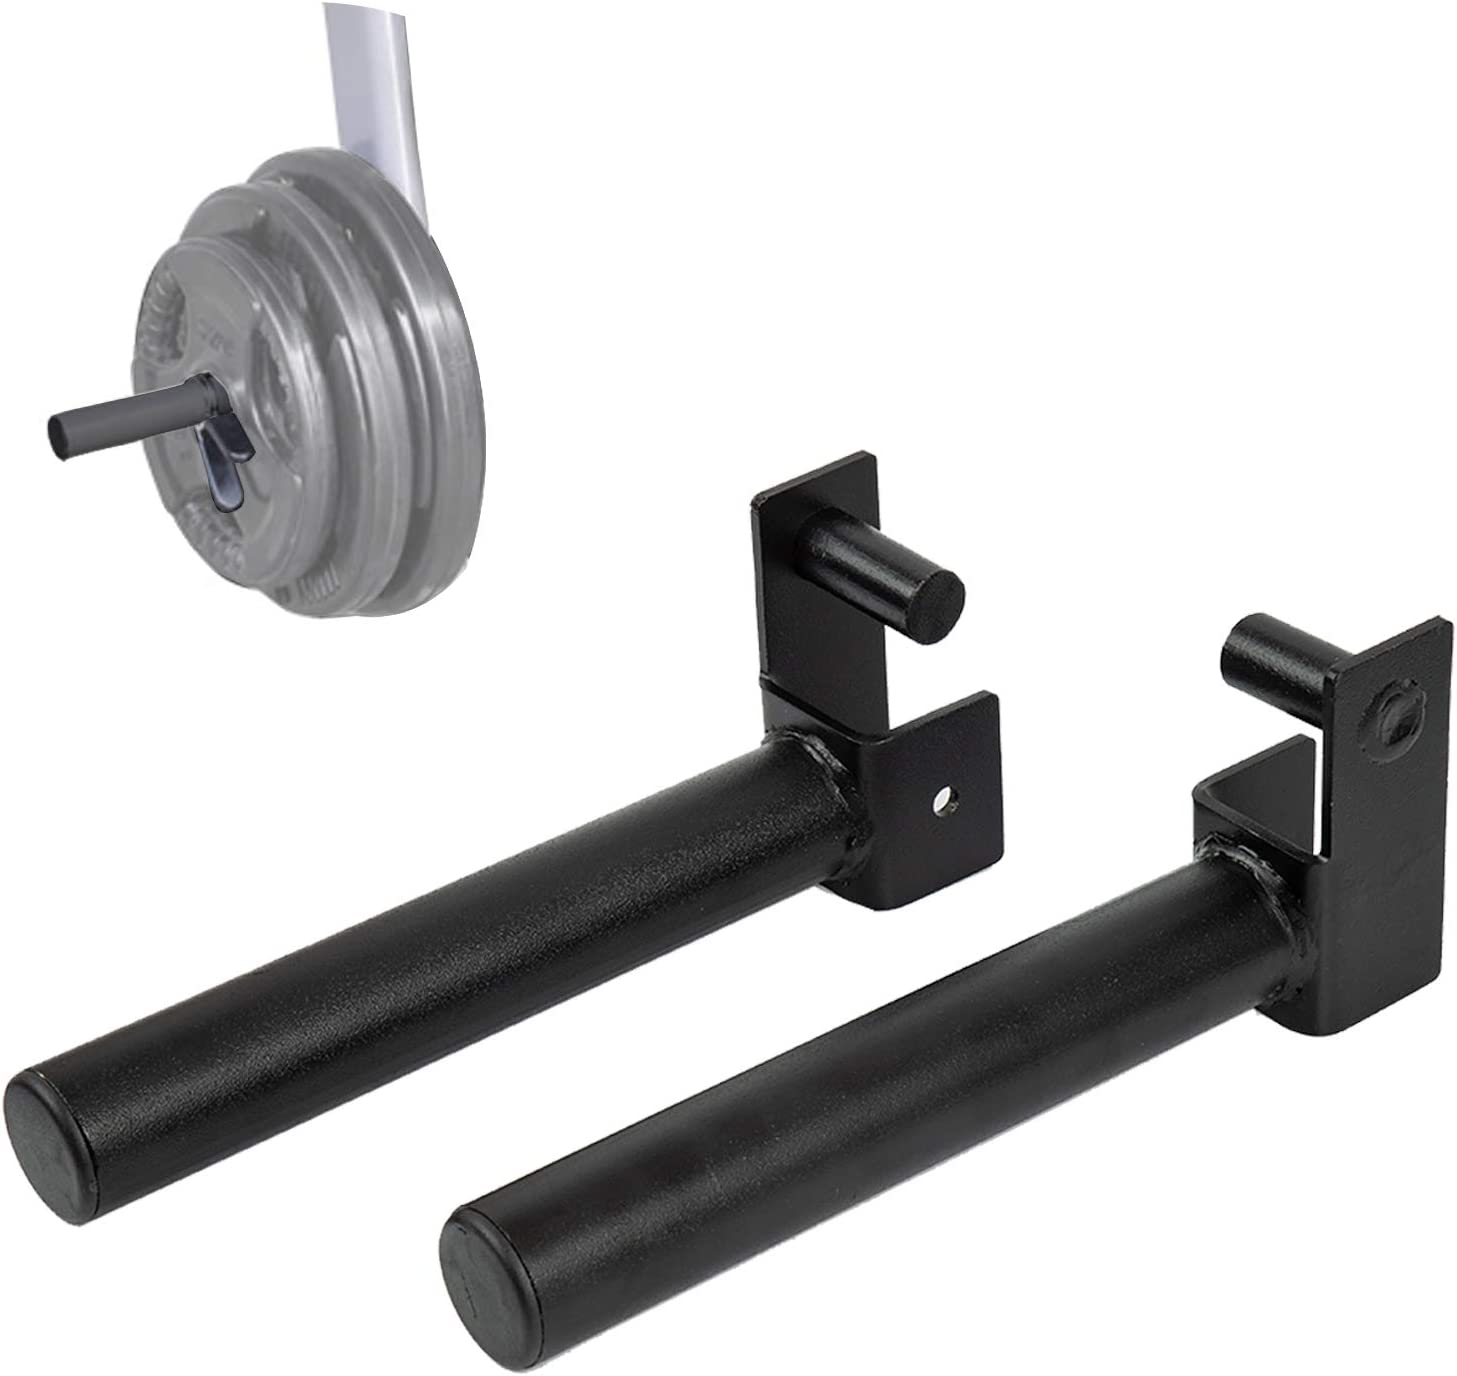 """Olympic Weight Plate Holder for 2""""x2"""" Tube Power Cage Weight Plate Storage Rack Attachment, Set of 2 : Sports & Outdoors"""